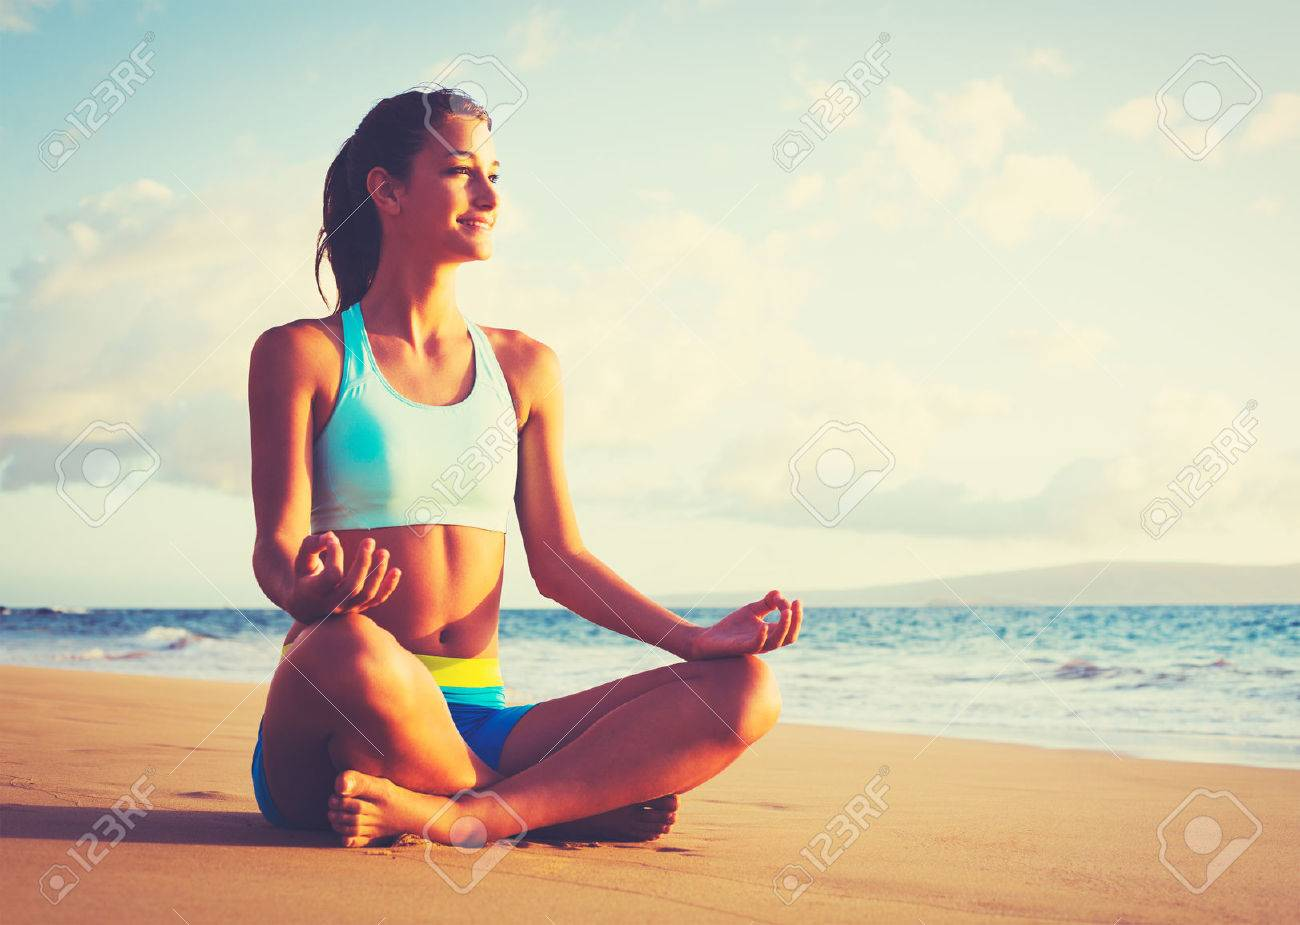 Happy young woman practicing yoga on the beach at sunset. Healthy active lifestyle concept. Stock Photo - 43698738